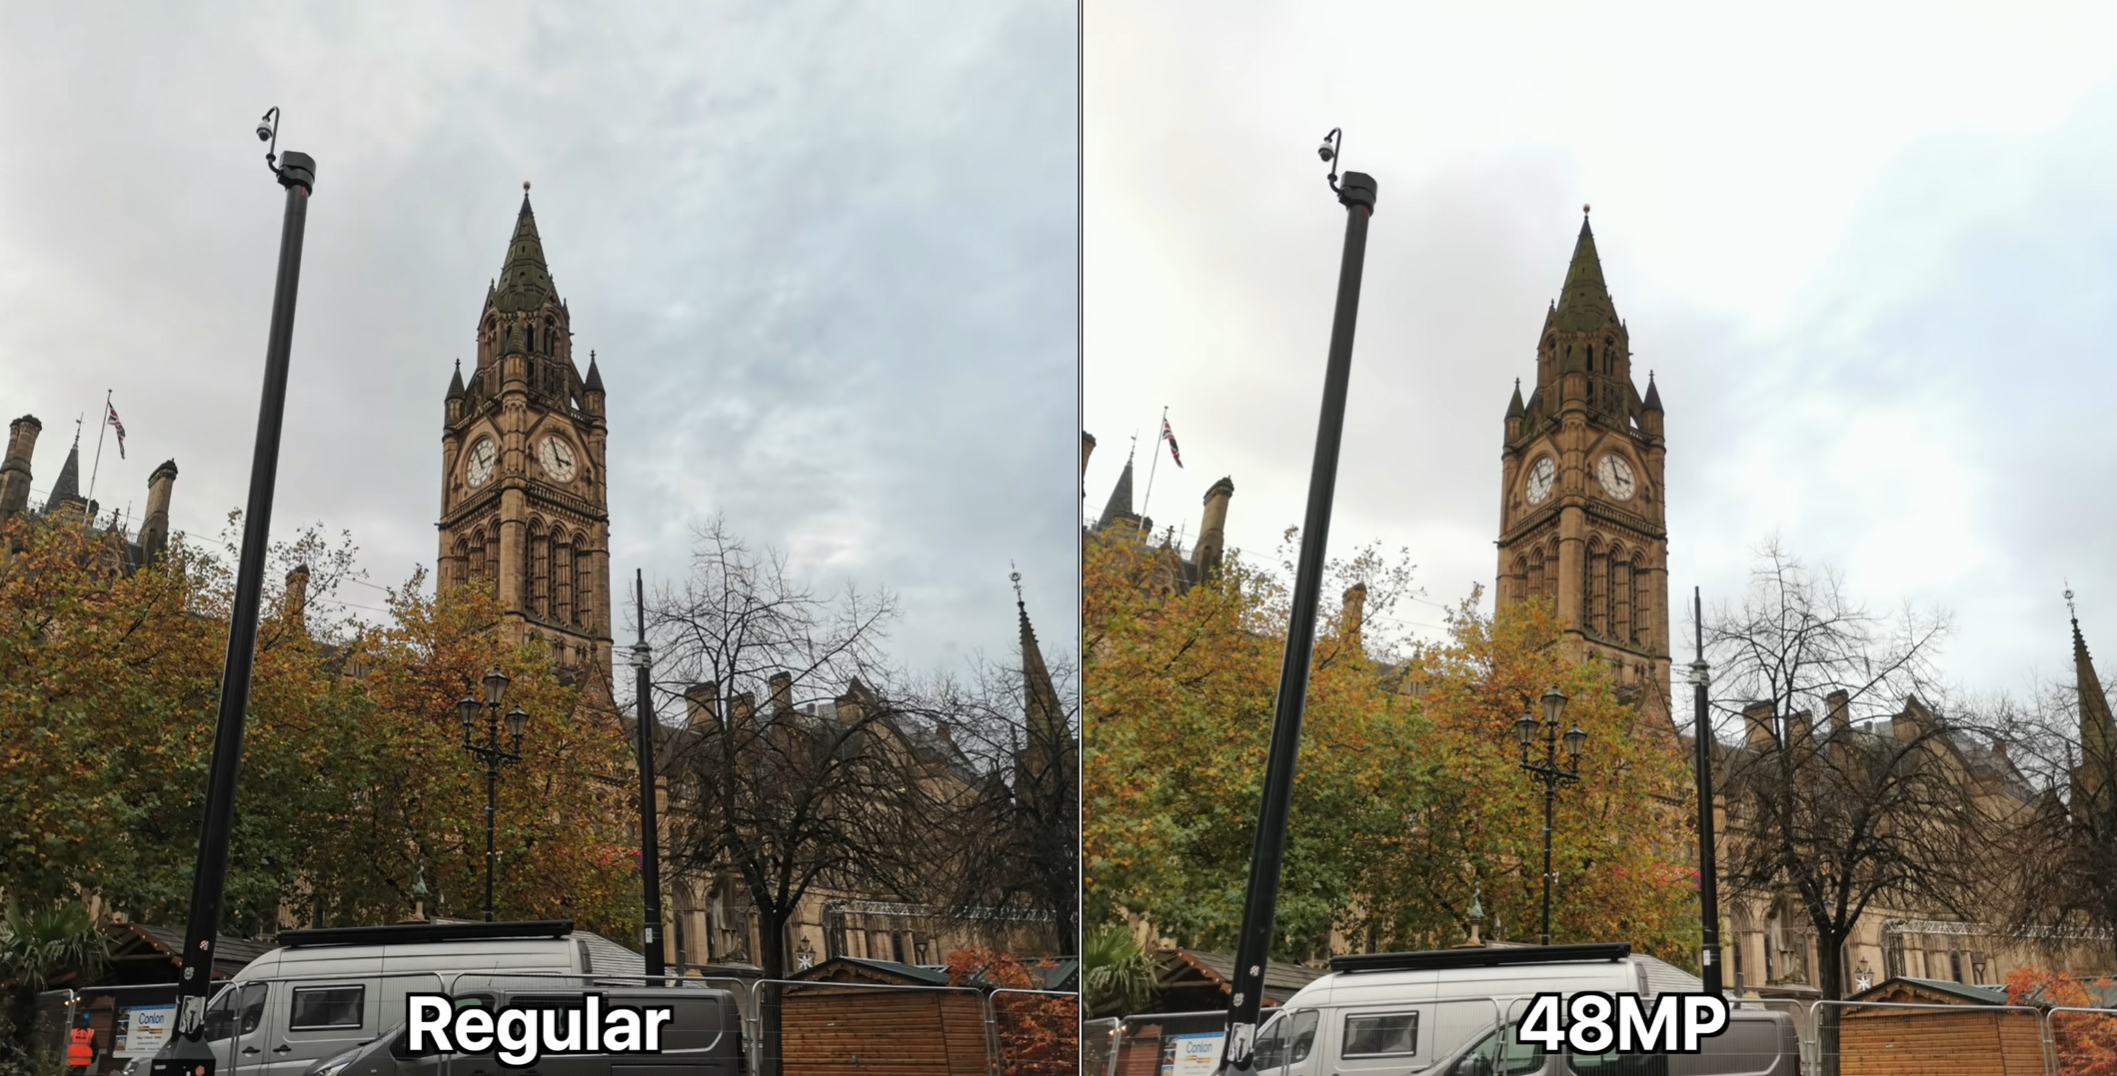 A comparison shot between the 12MP Camera and the 48MP secret option